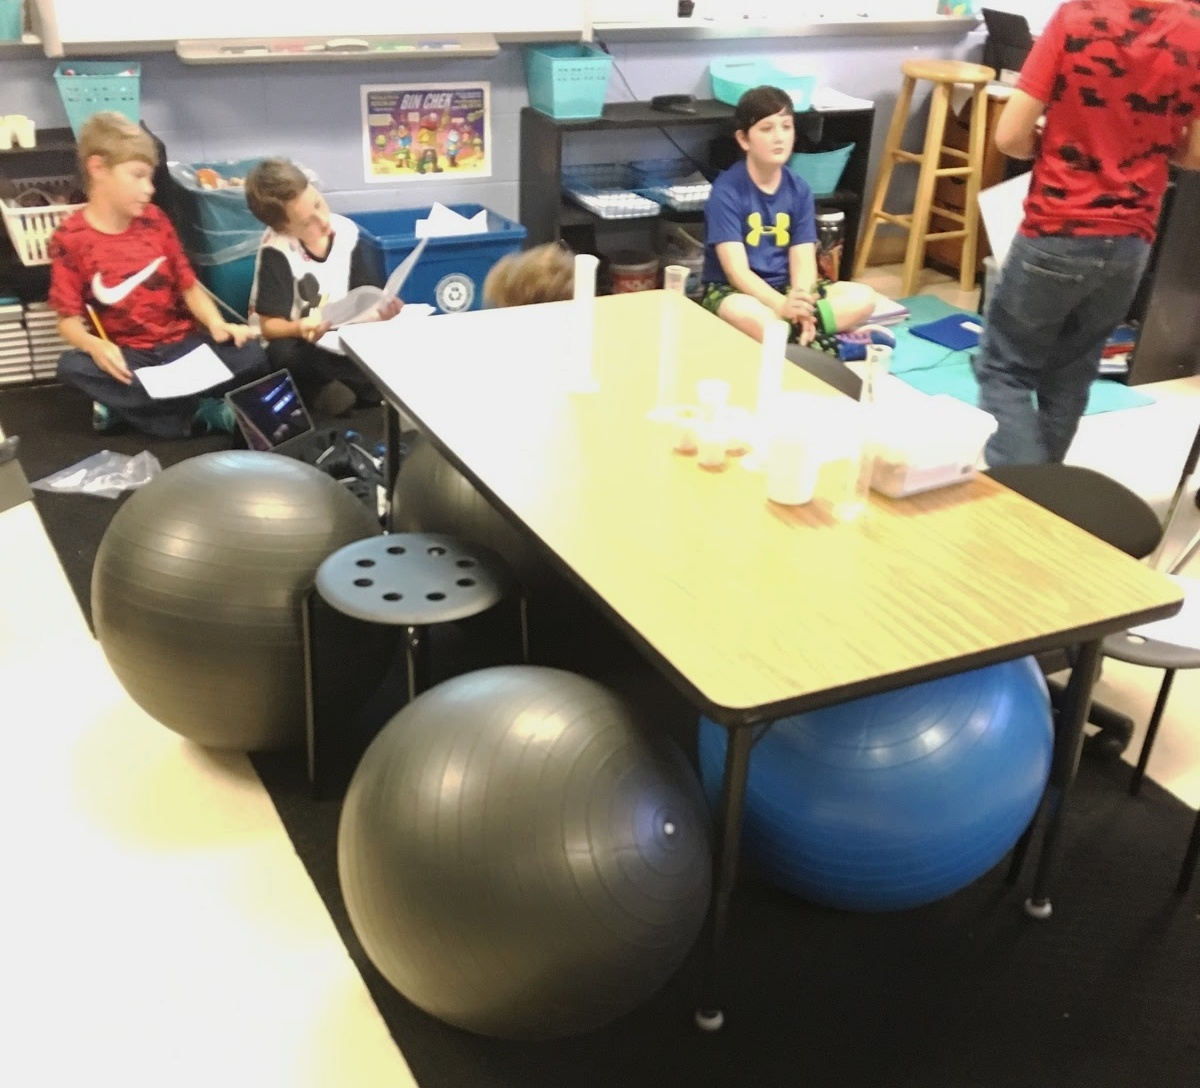 An image of a communal desk in a classroom with exercise balls for seats.